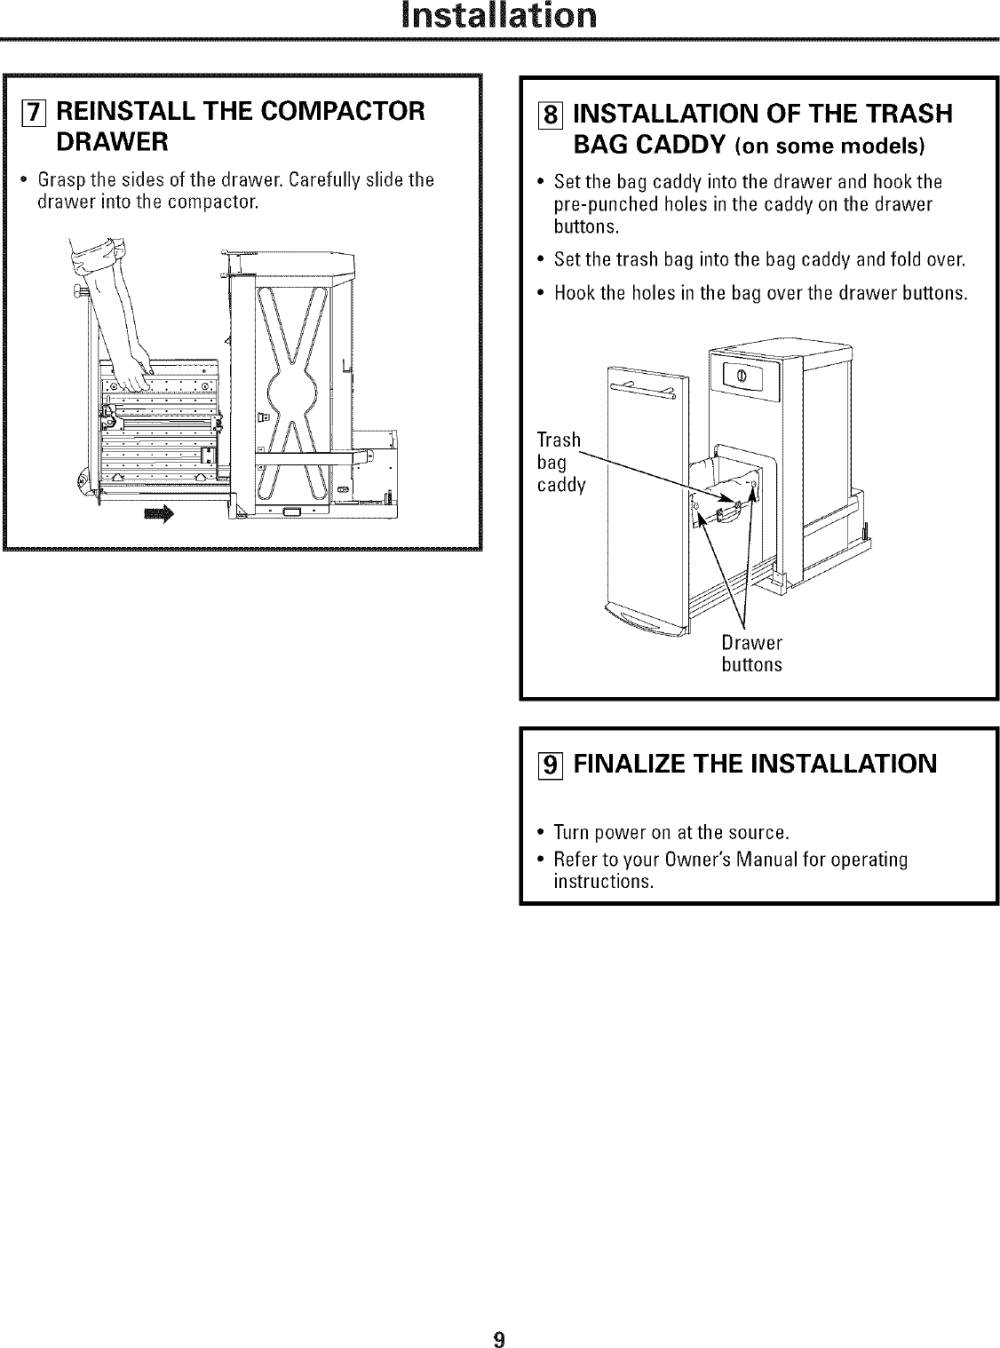 medium resolution of page 9 of 12 ge gcg1580l0ss user manual compactor manuals and guides l0603299